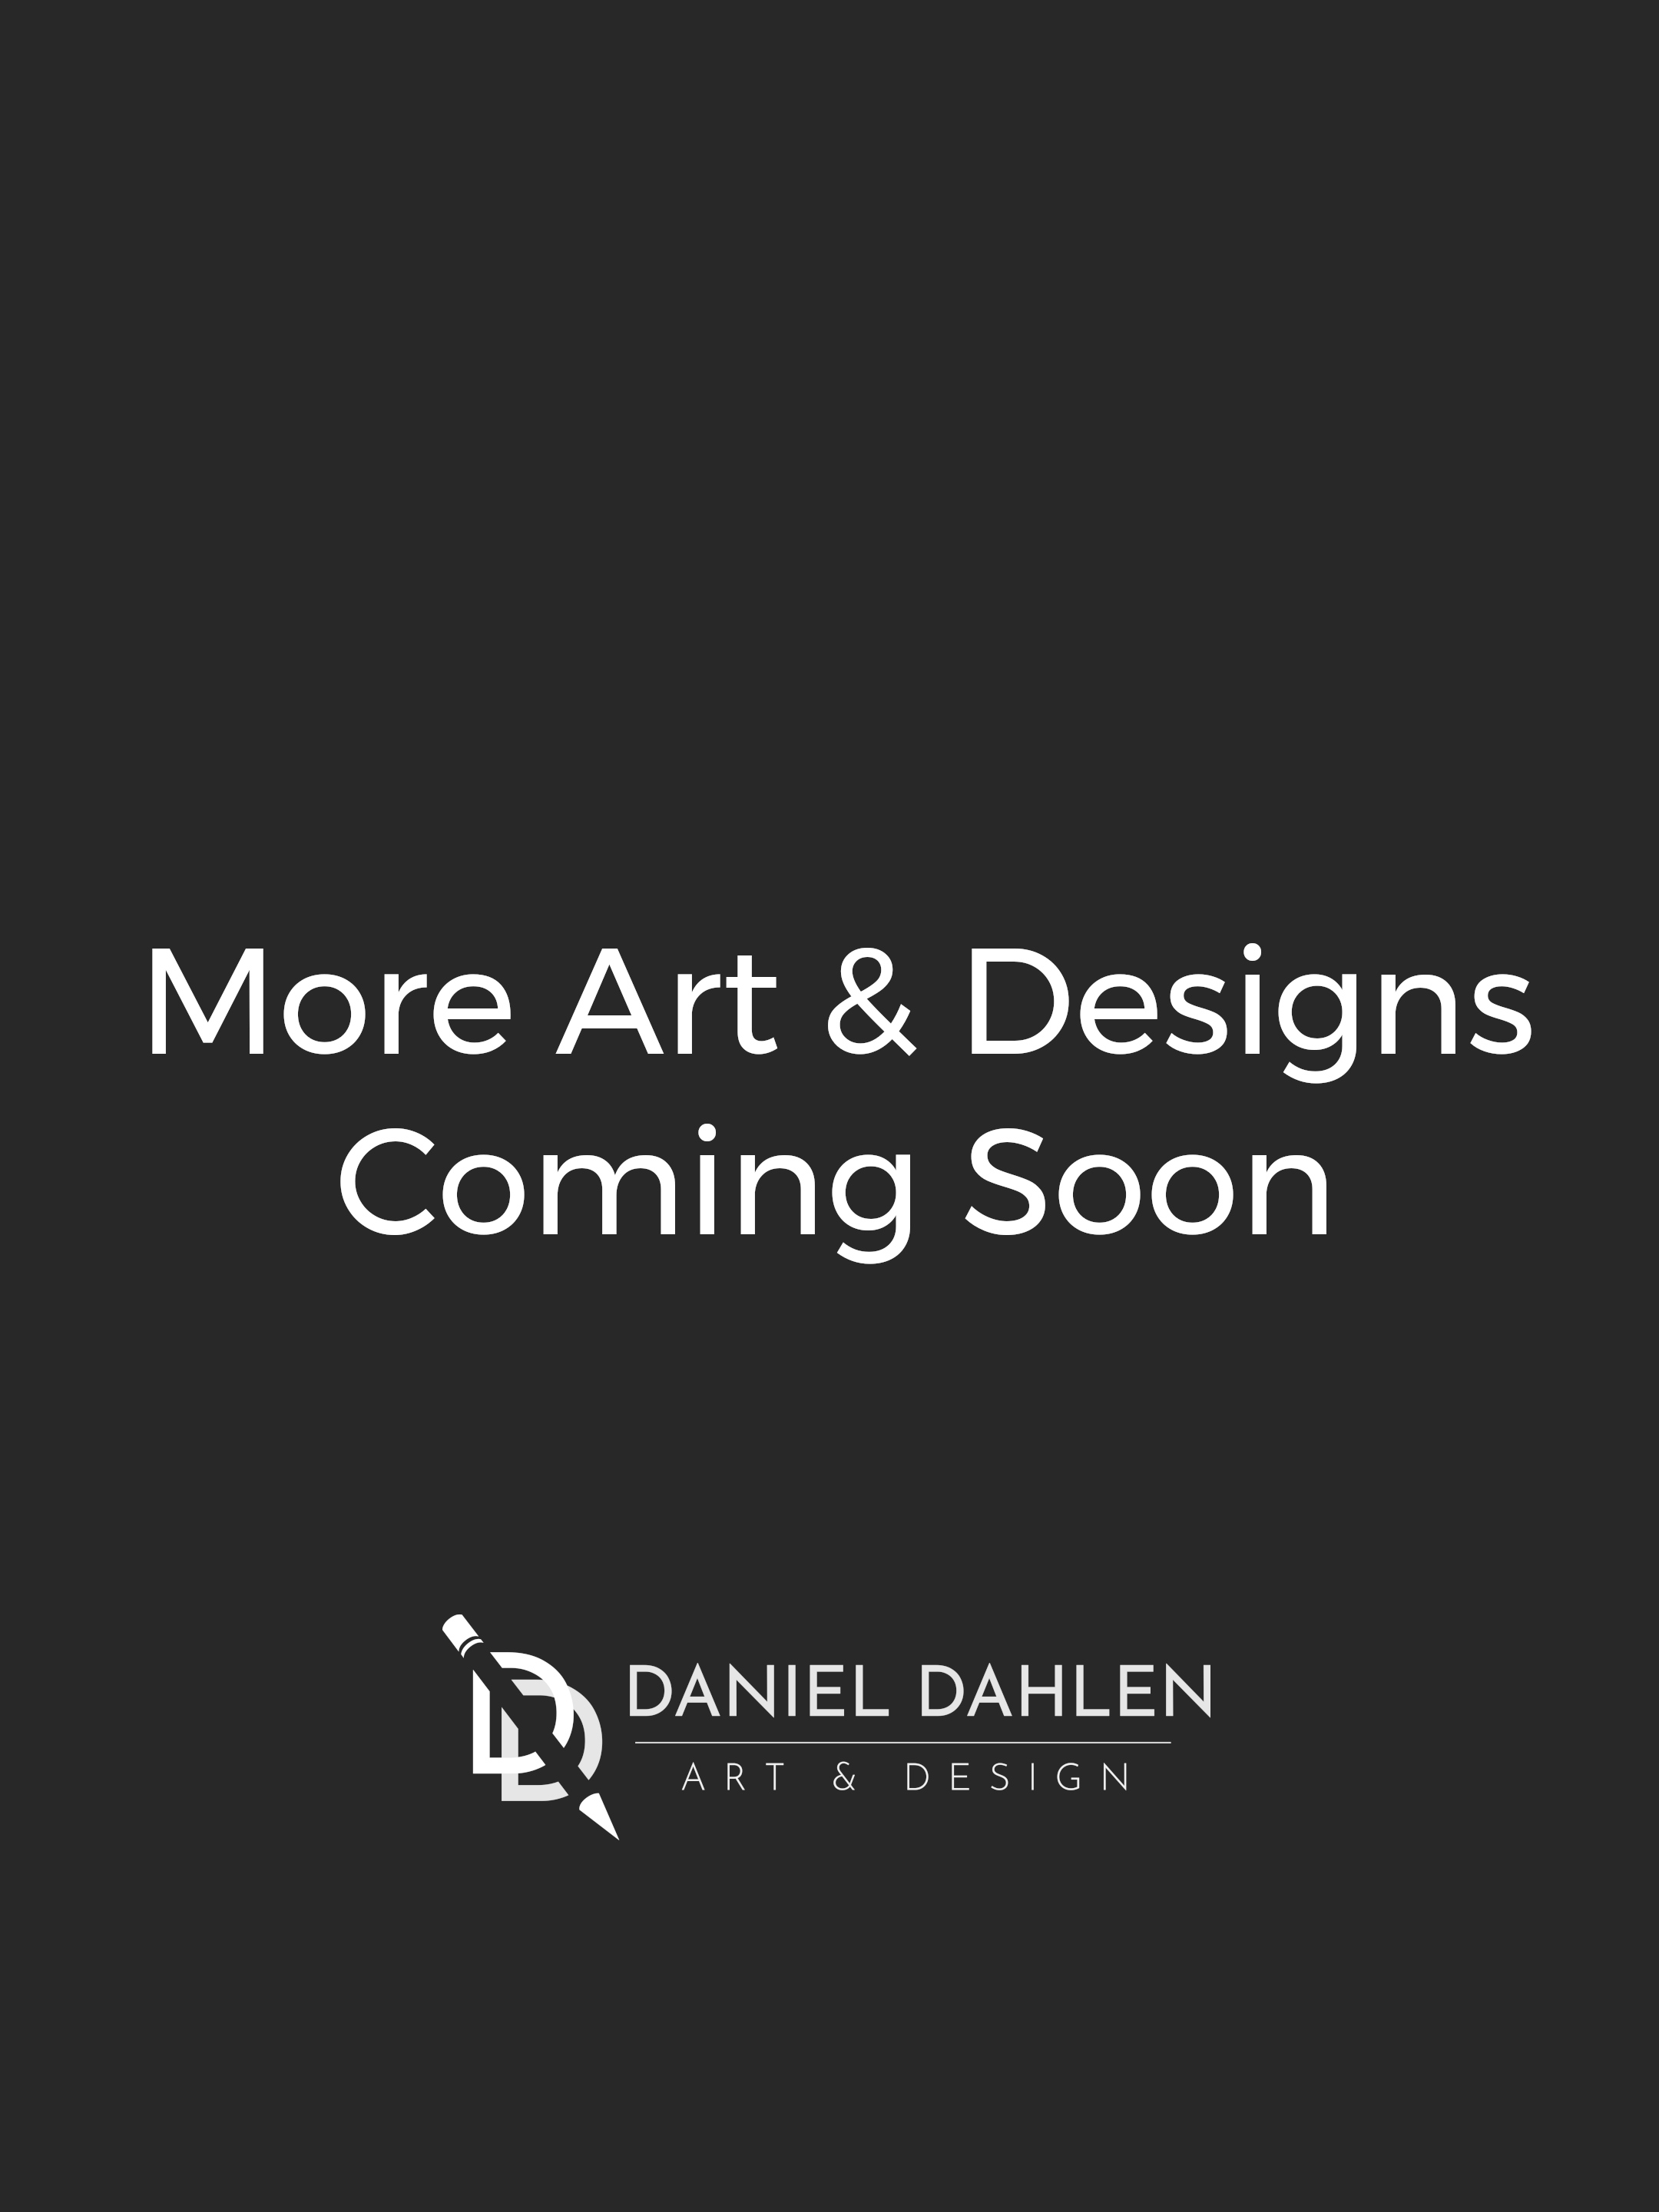 More Art & Designs Coming Soon